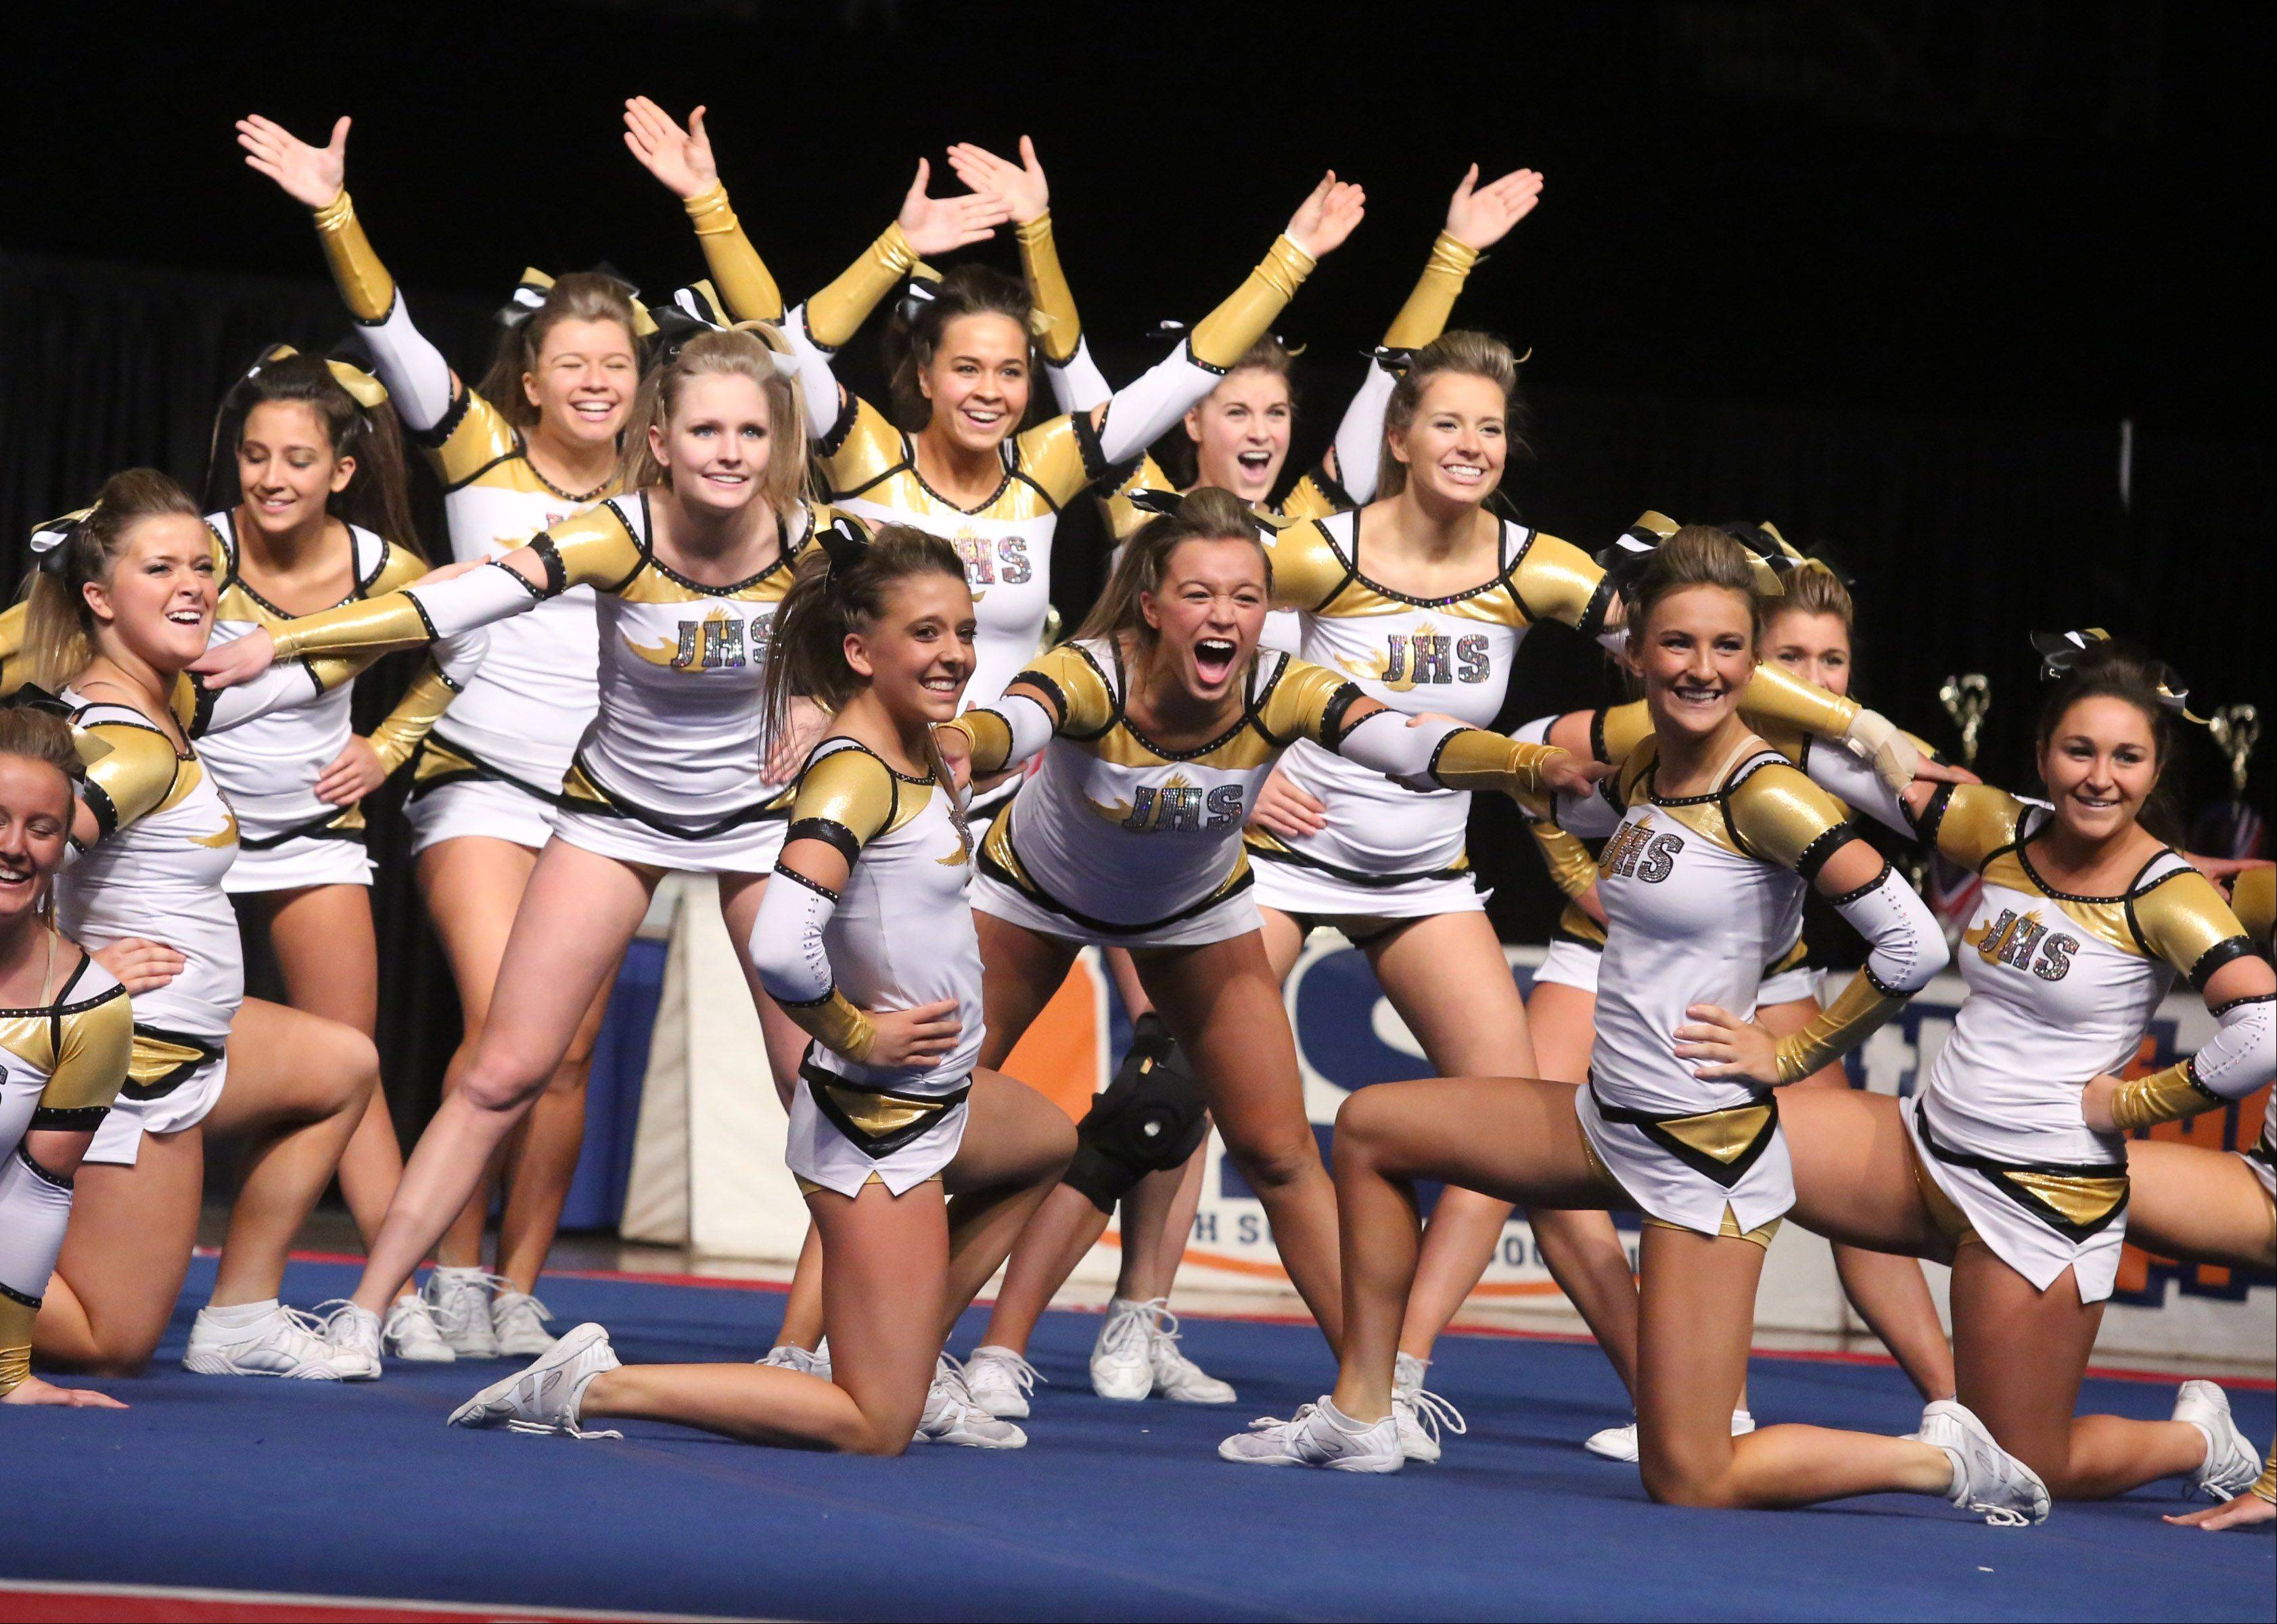 Jacobs High School's cheer team performs in the large team category.